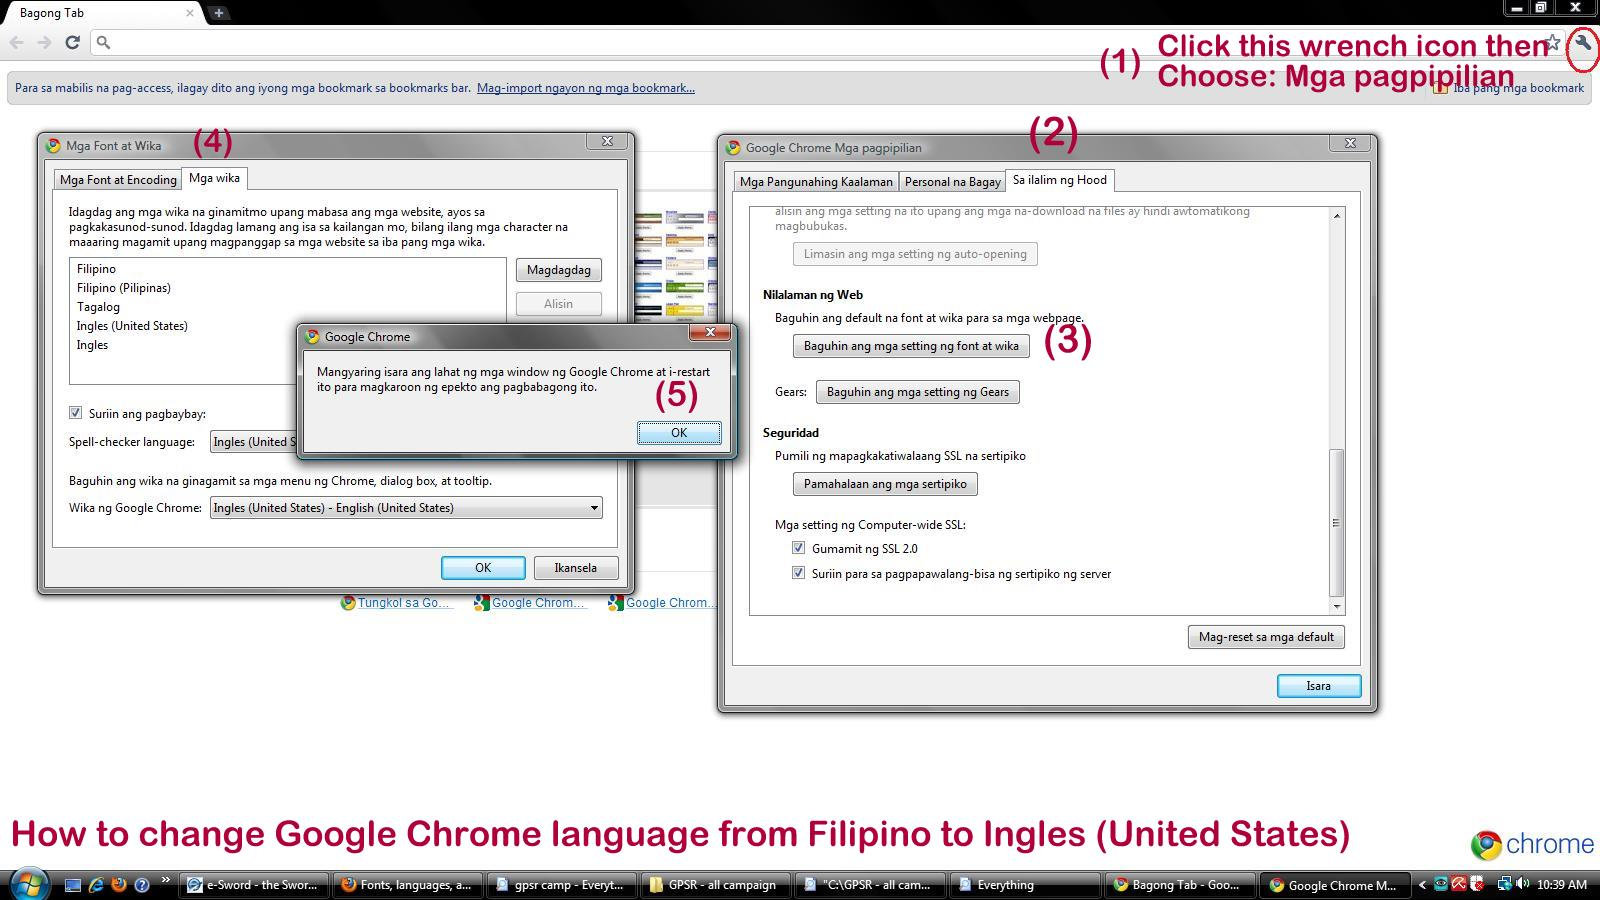 How to change Google Chrome language from Tagalog to English